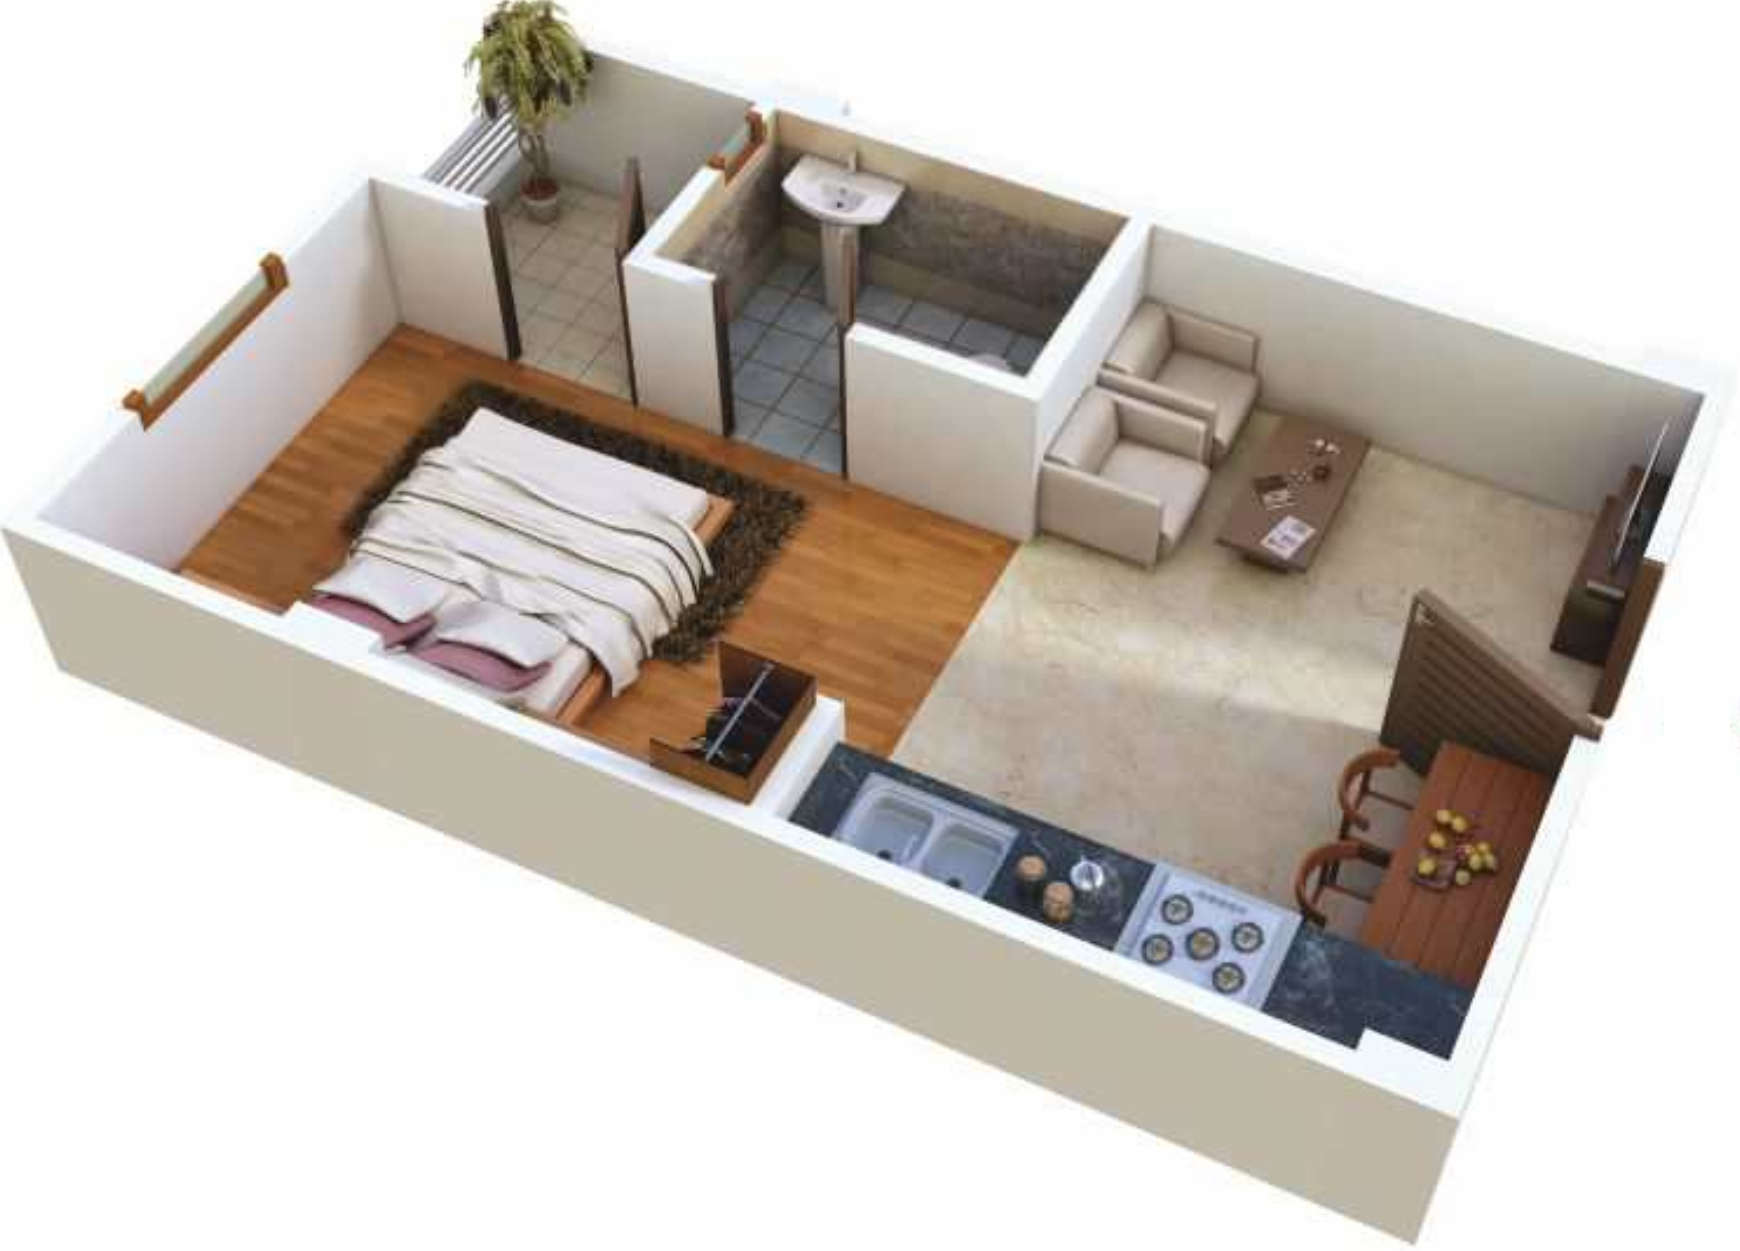 House Of Representatives Floor Plan 450 Sq Ft 1 Bhk 1t Apartment For Sale In Samanvay Group